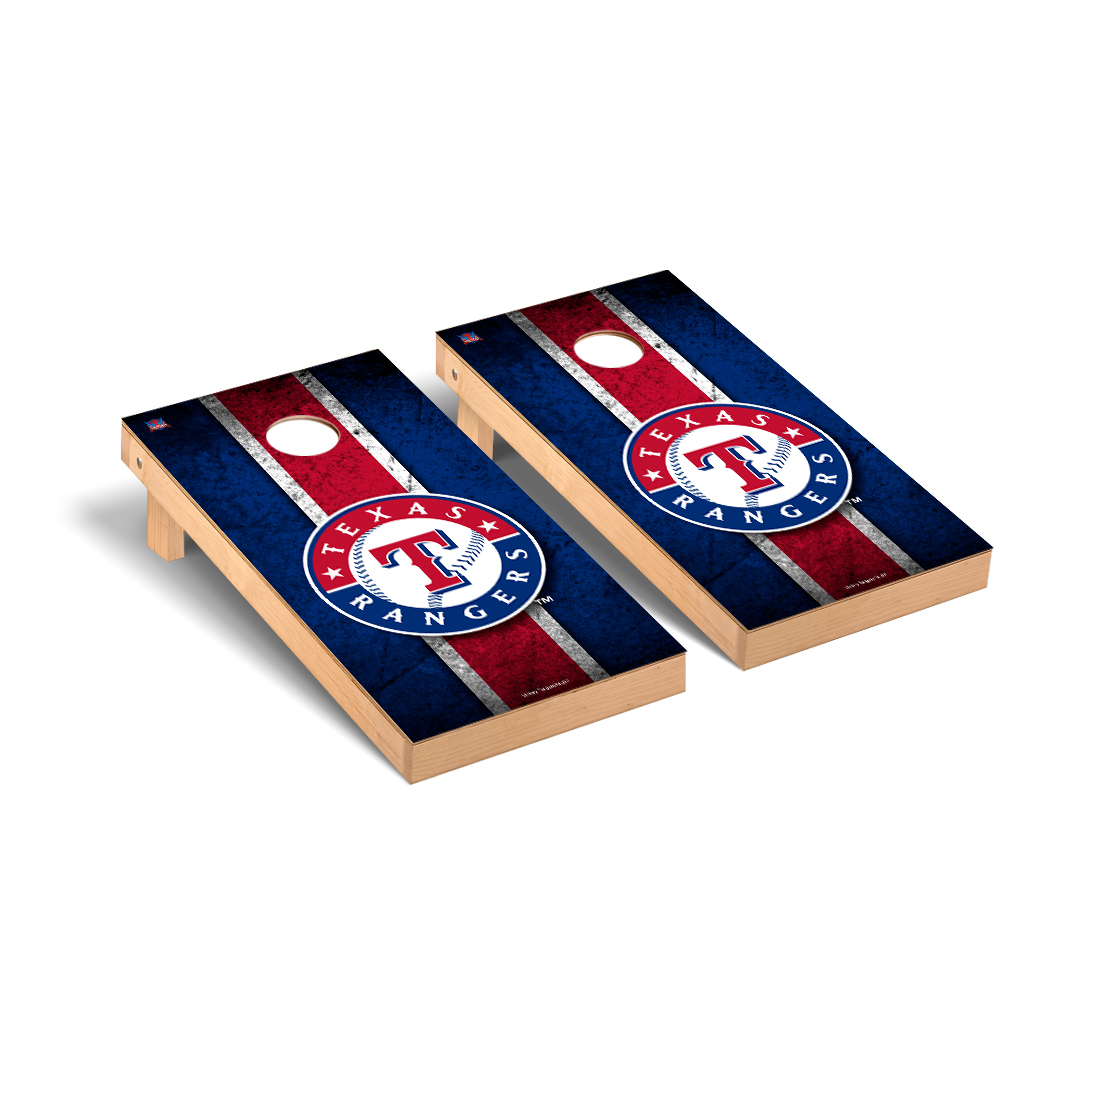 Texas Rangers MLB Baseball Cornhole Game Set Vintage Version